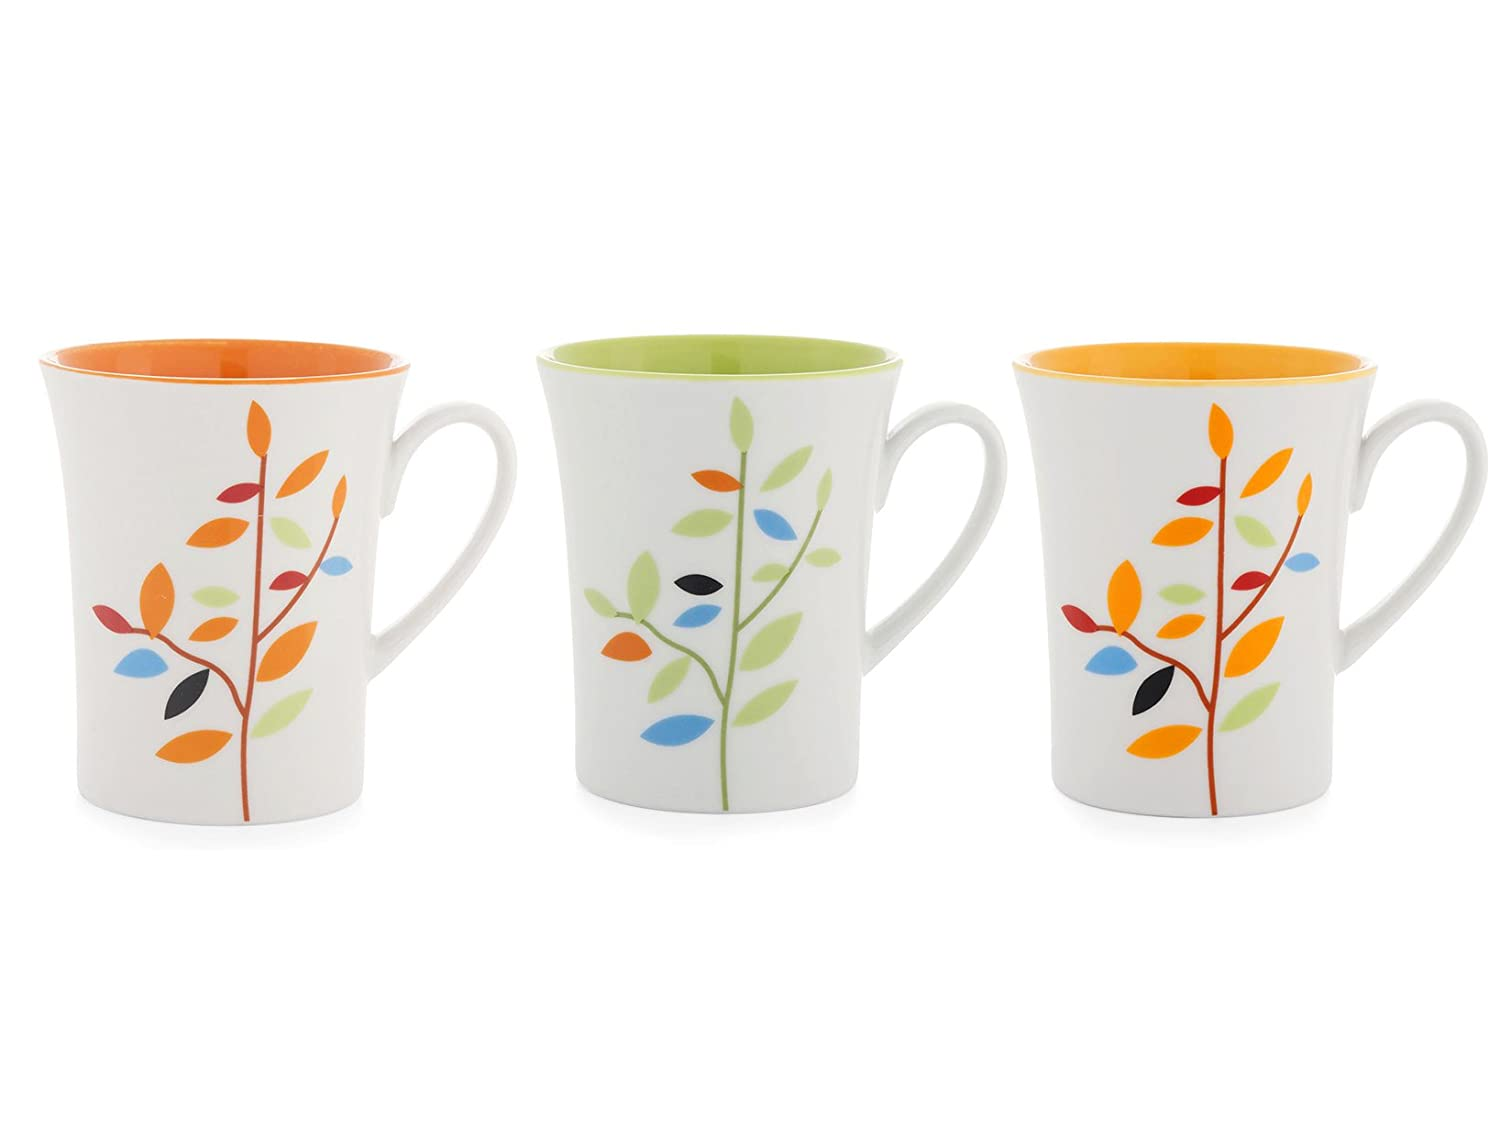 Ceramica Home Leaves Set Tazze Mug 12 unit/à Bianco